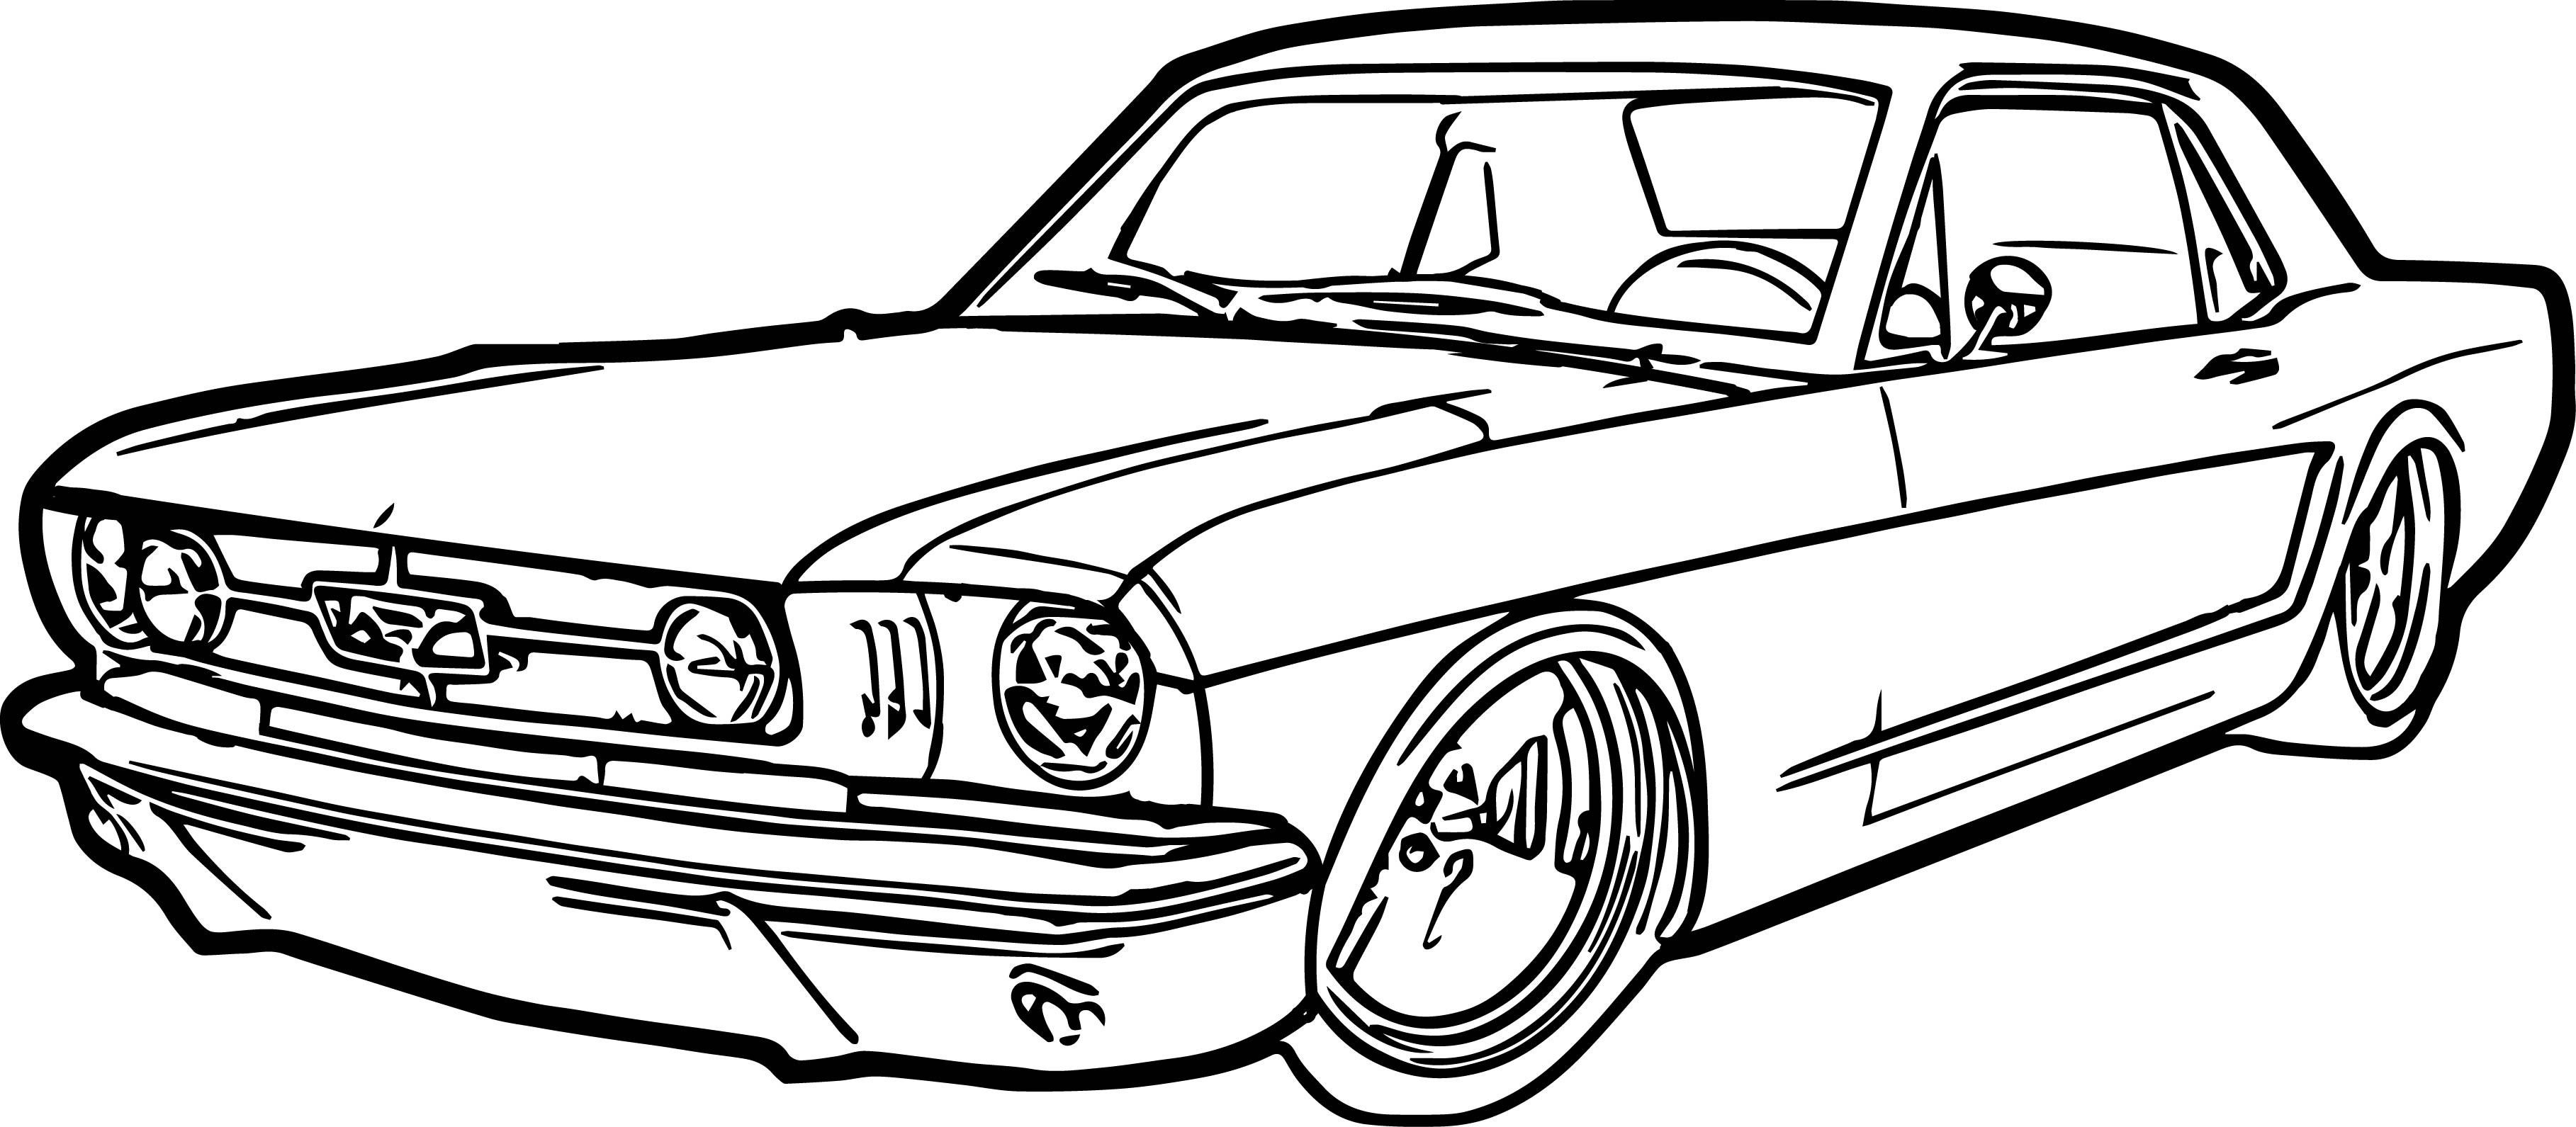 coloring page of car drag car drawings free download on clipartmag coloring of car page